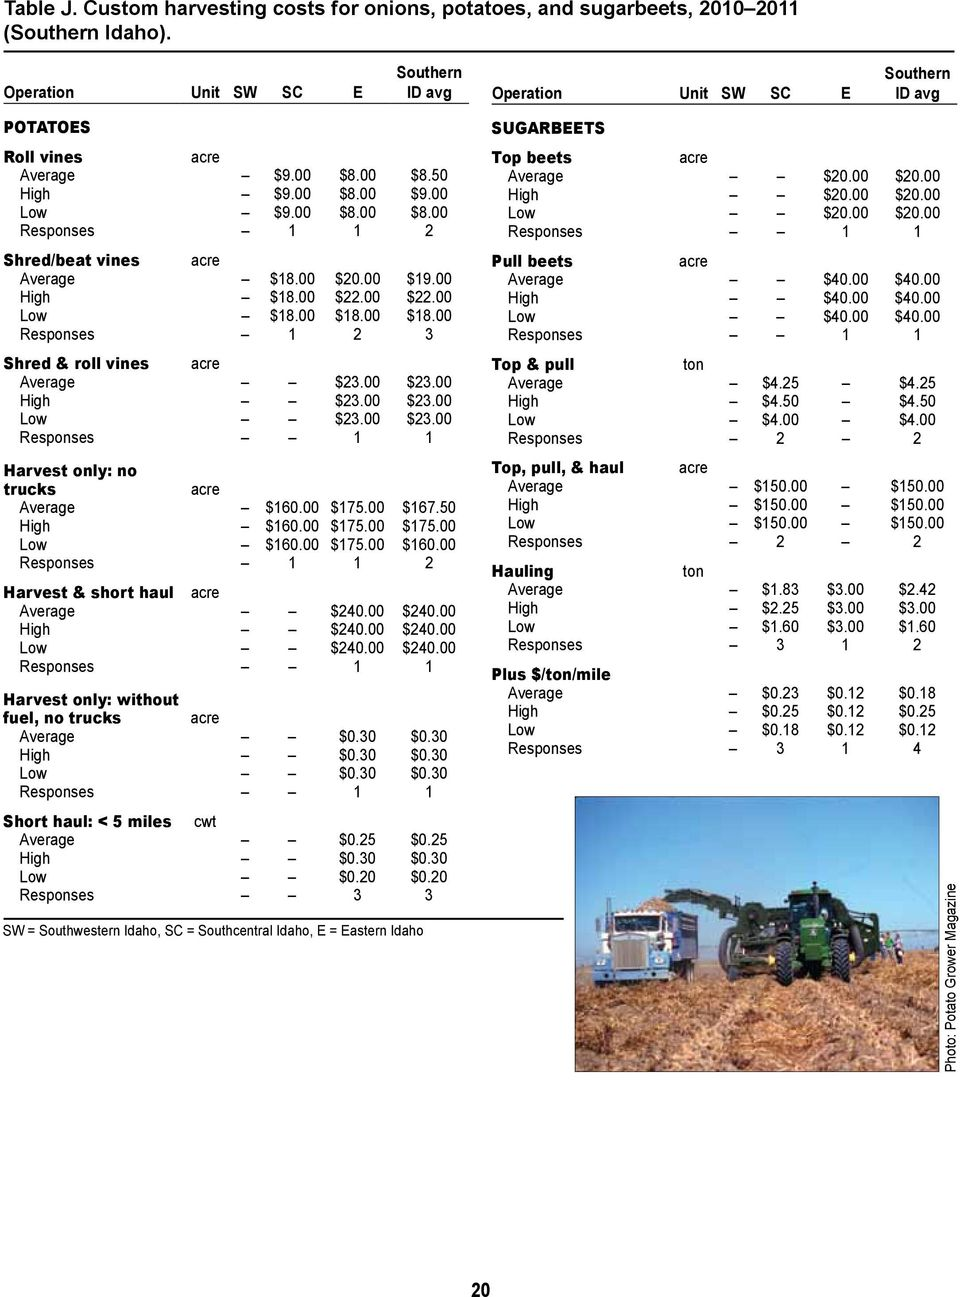 00 $175.00 $167.50 High $160.00 $175.00 $175.00 Low $160.00 $175.00 $160.00 Responses 1 1 2 Harvest & short haul acre Average $240.00 $240.00 High $240.00 $240.00 Low $240.00 $240.00 Harvest only: without fuel, no trucks acre Average $0.